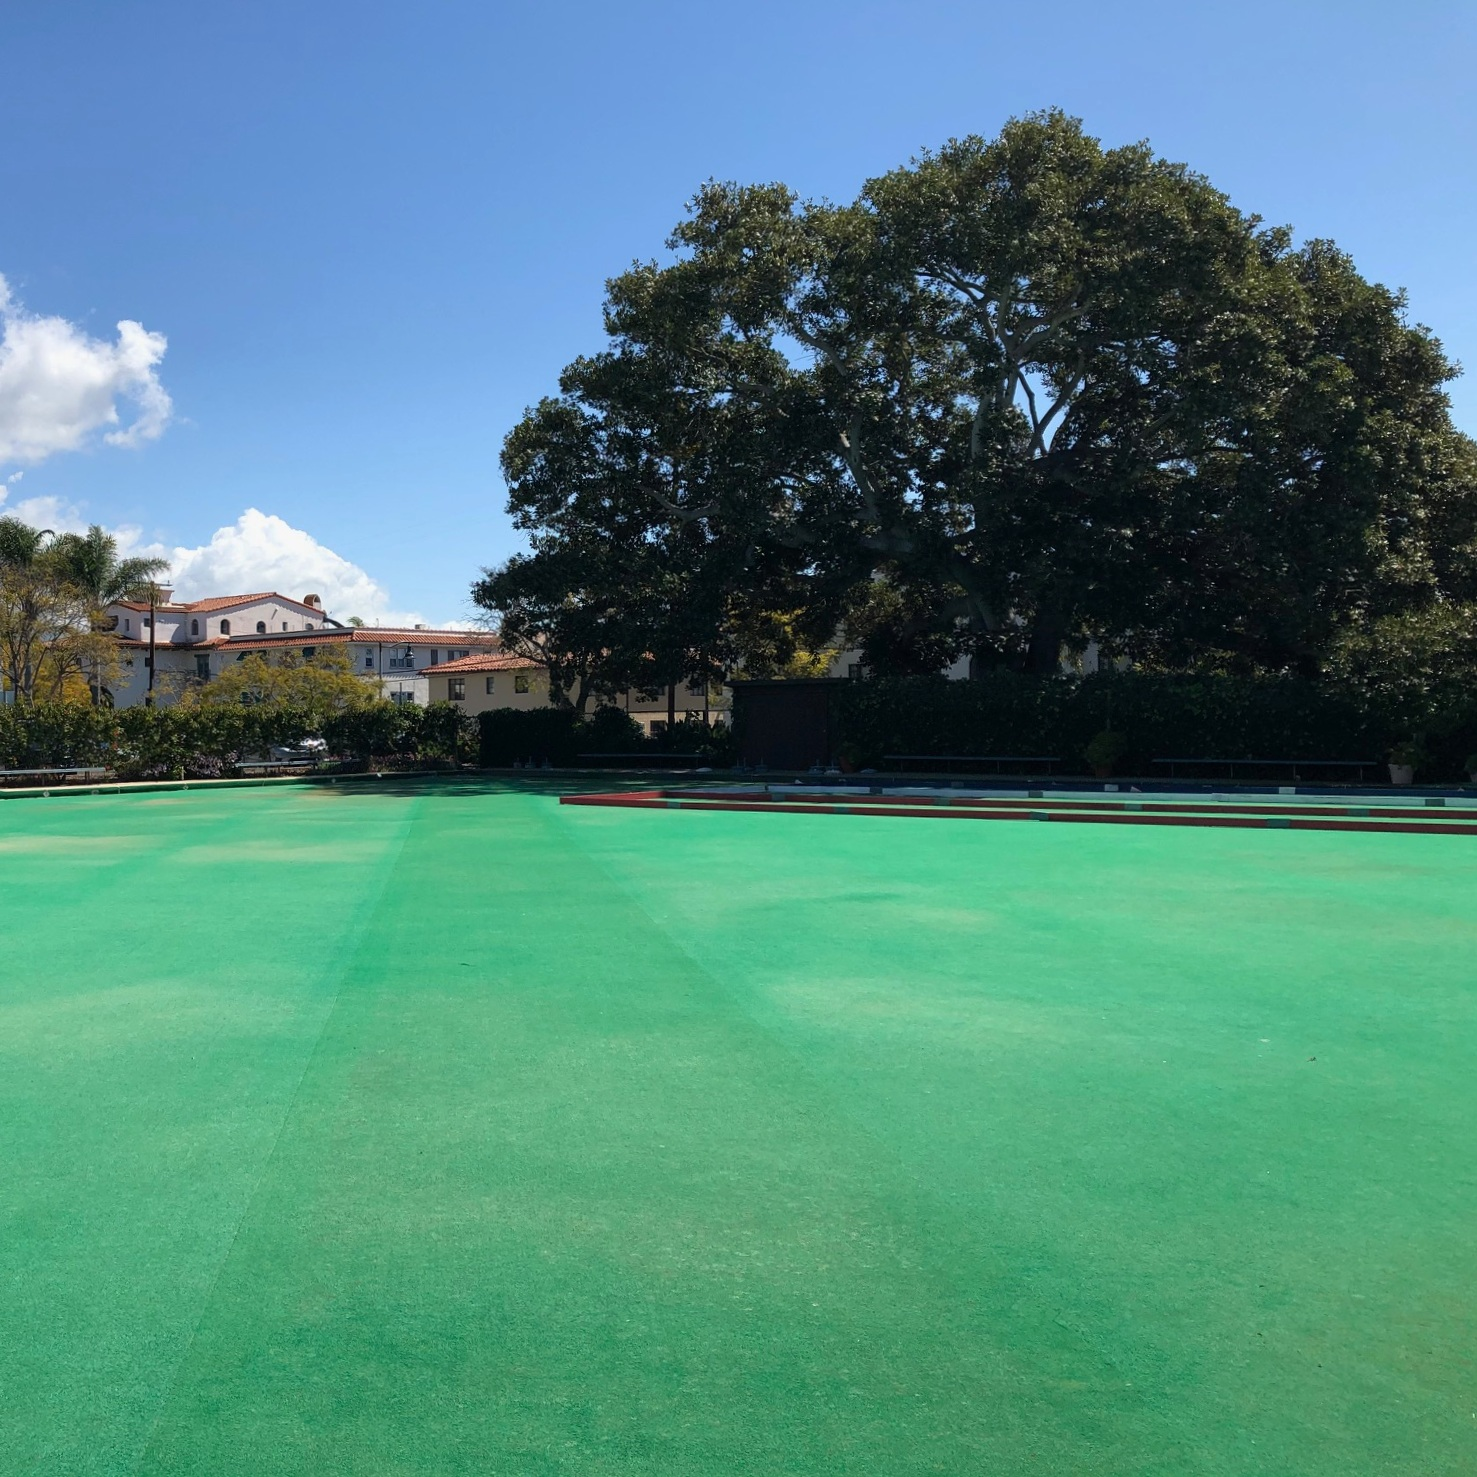 Stan Palmer Green - Santa Barbara Lawn Bowls Club also features an artificial turf bowling green, which allows us to bowl even in soggy conditions. This green was named for Stan Palmer in 2003, whose generous donation made this green possible. It also features removable bocce courts, which serve the local Special Olympics bocce team.